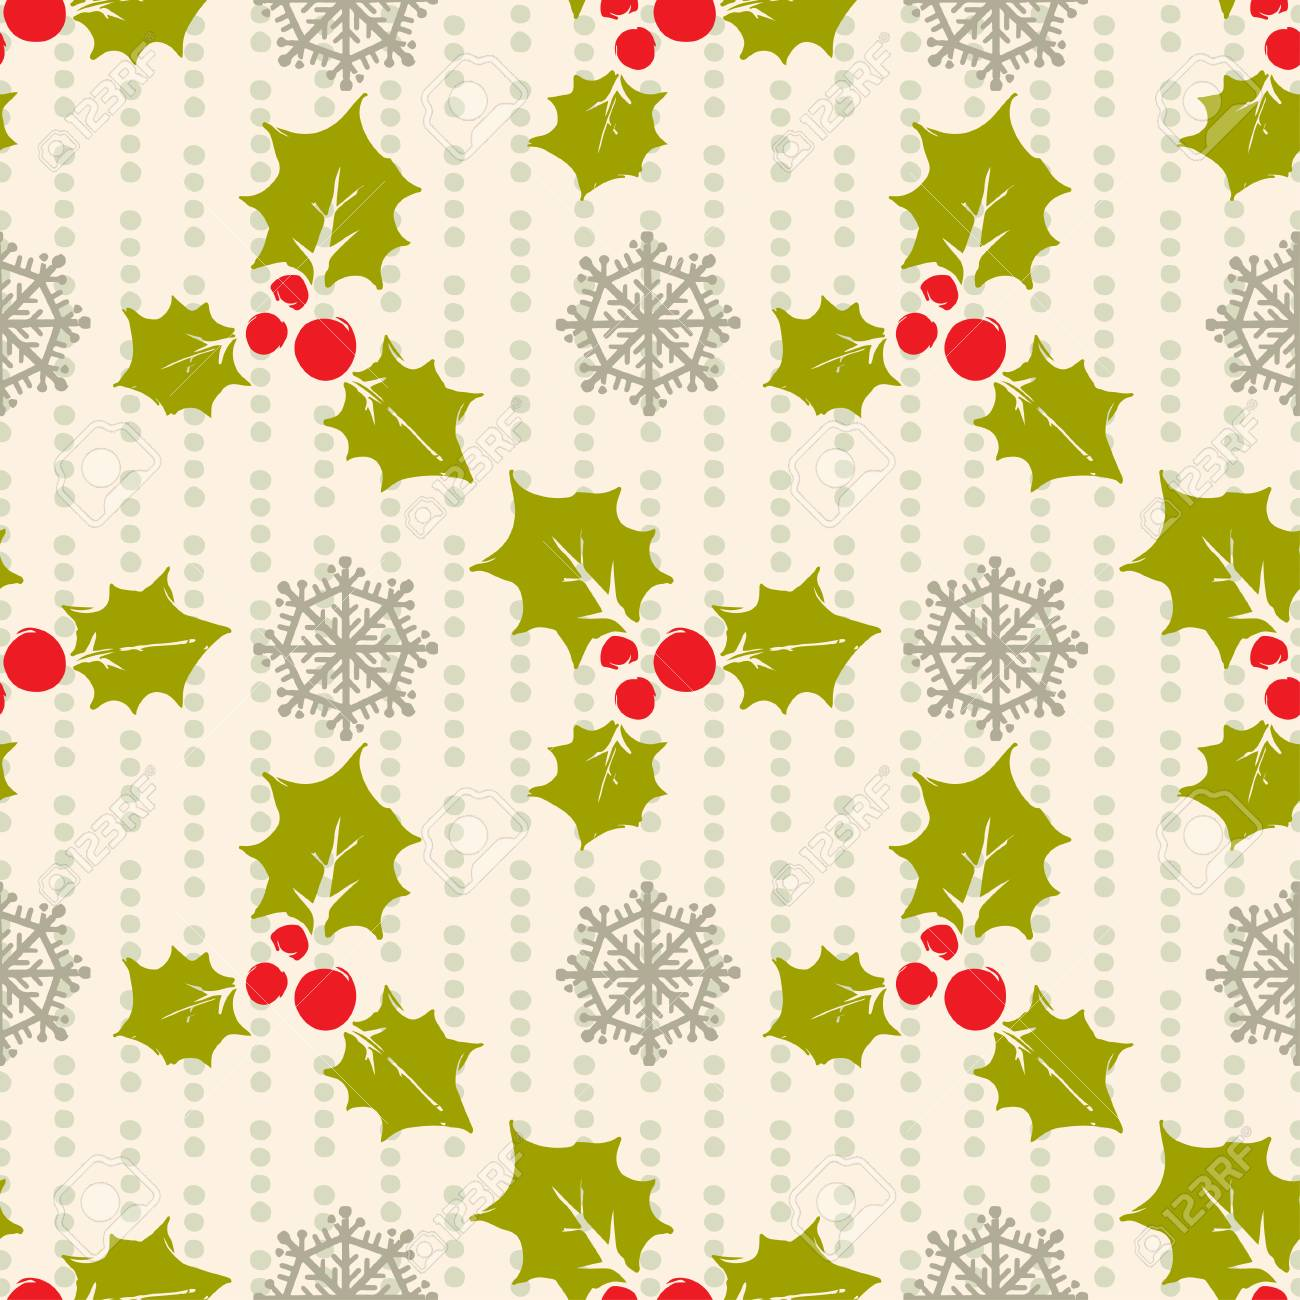 Holidays Vintage Christmas Seamless Pattern Abstract Silhouette Royalty Free Cliparts Vectors And Stock Illustration Image 96964531